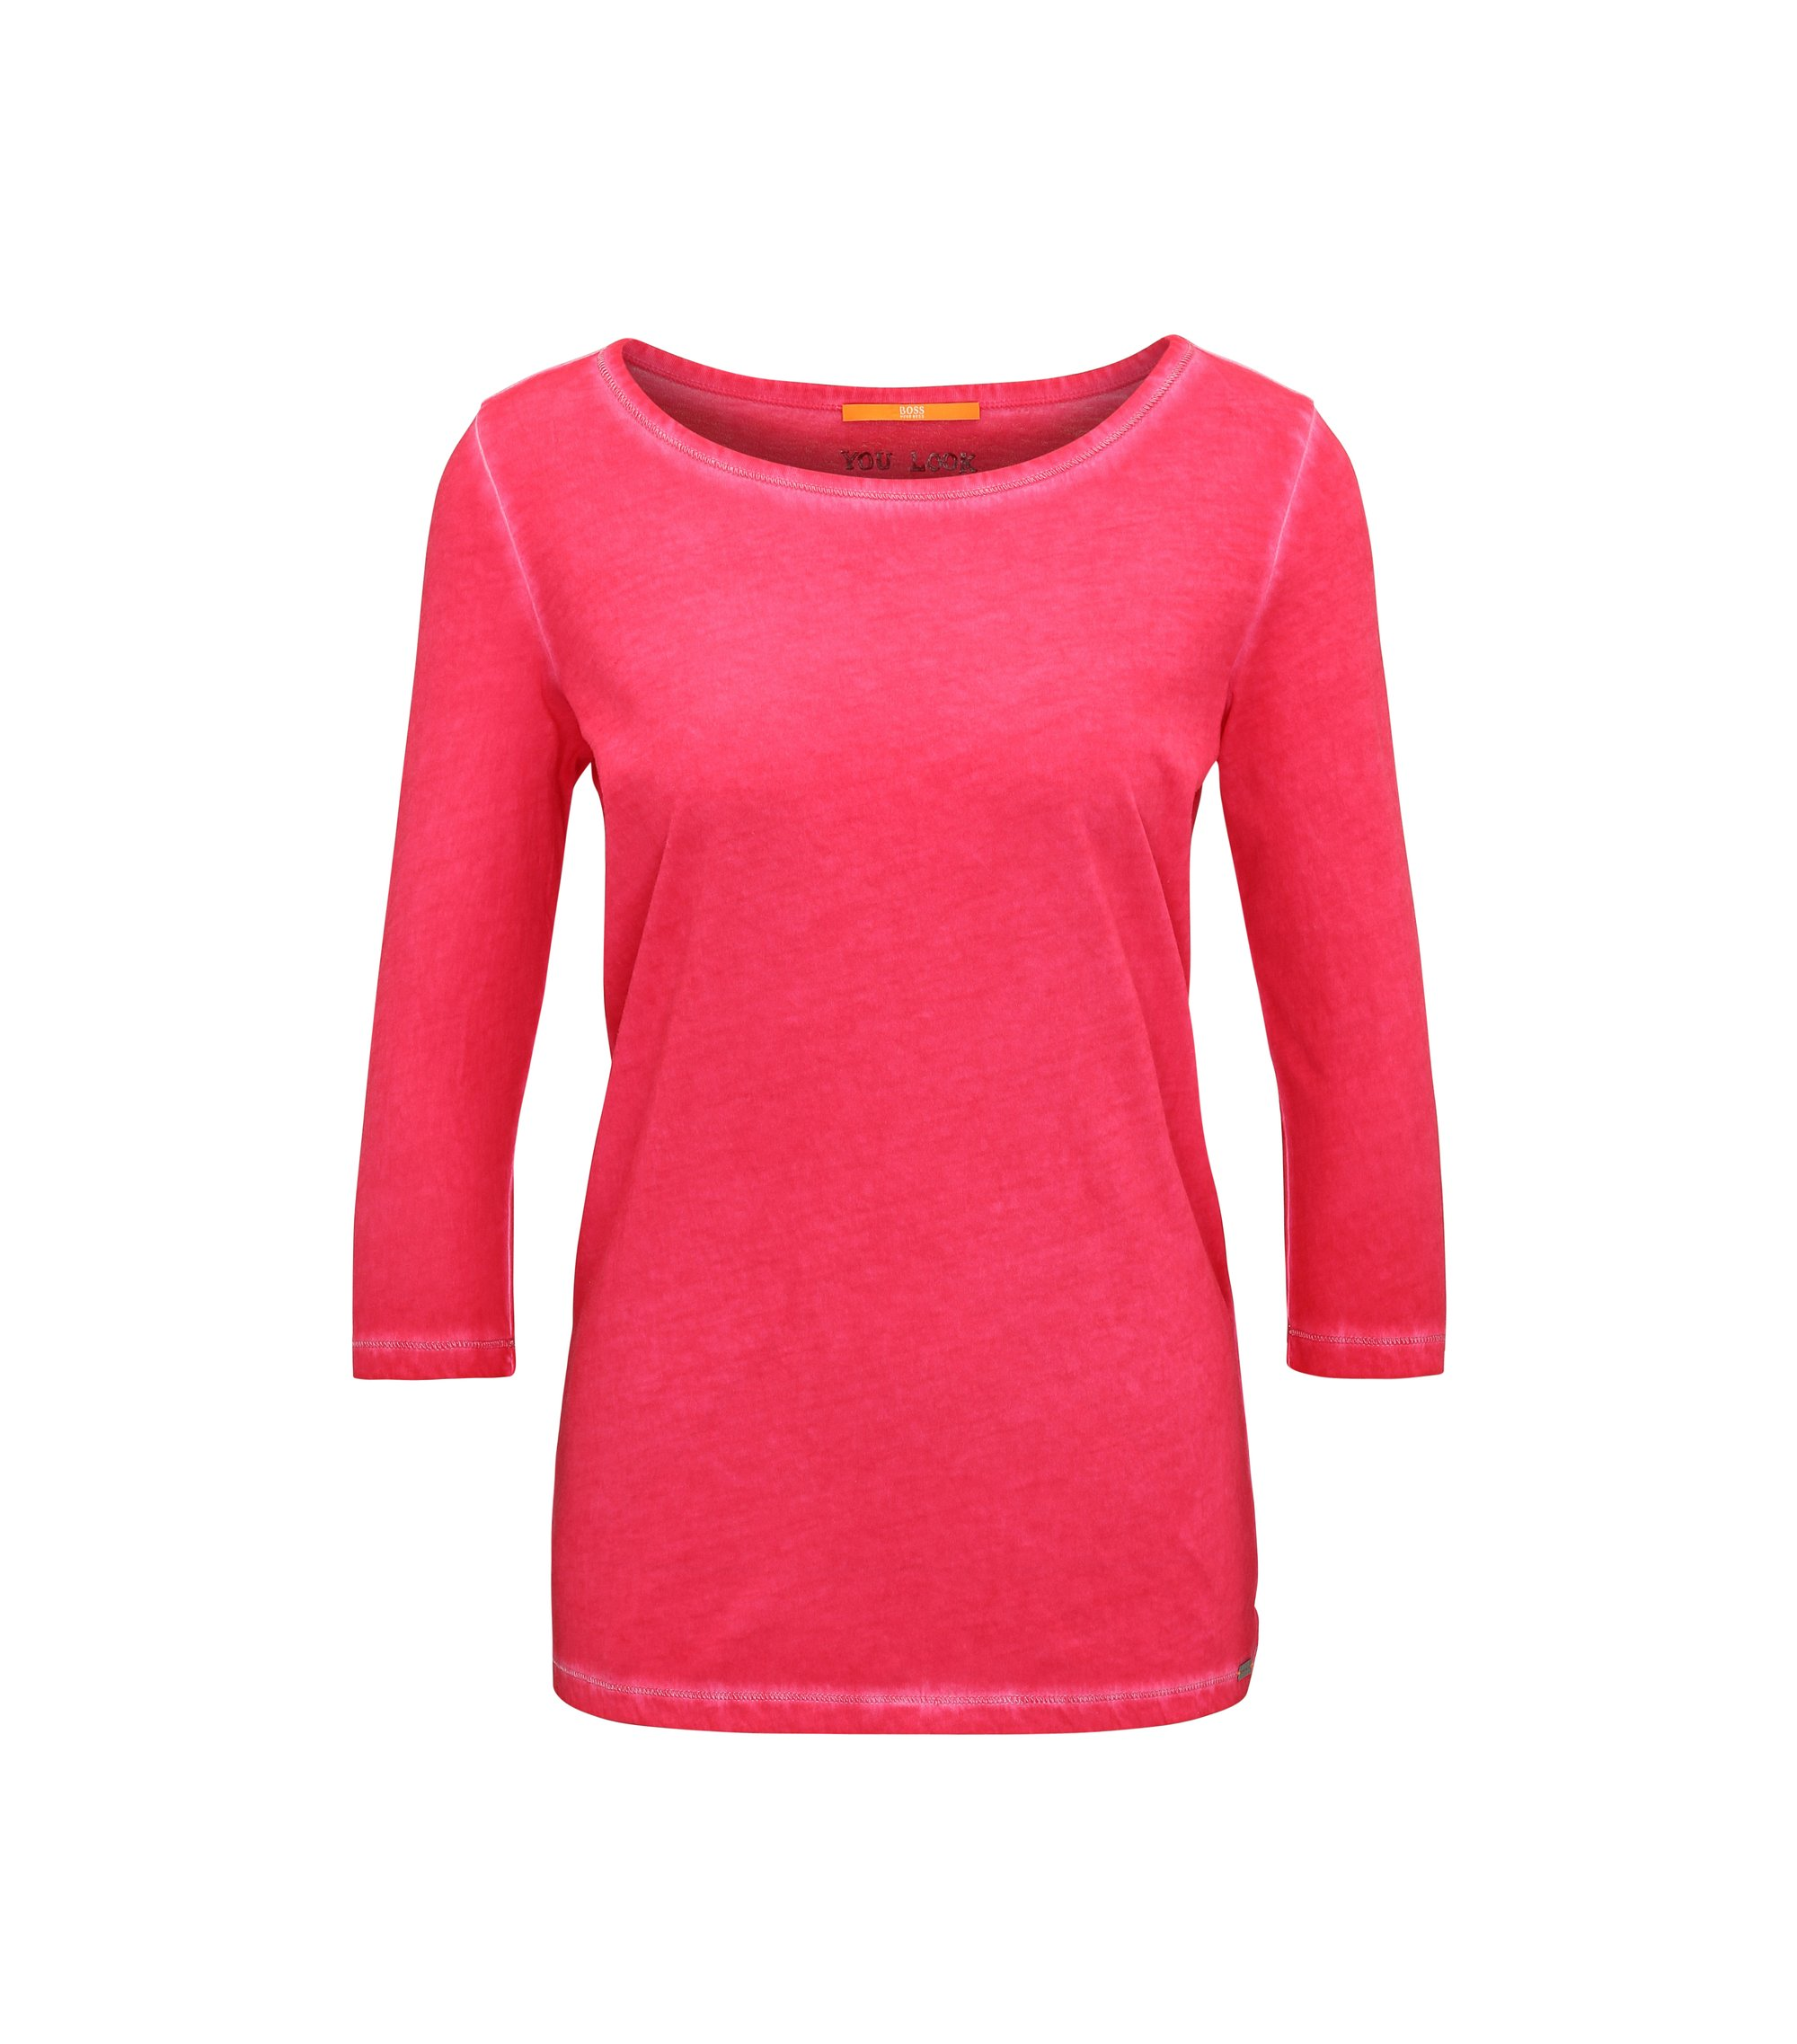 Slim-fit T-shirt in garment-dyed cotton, Pink